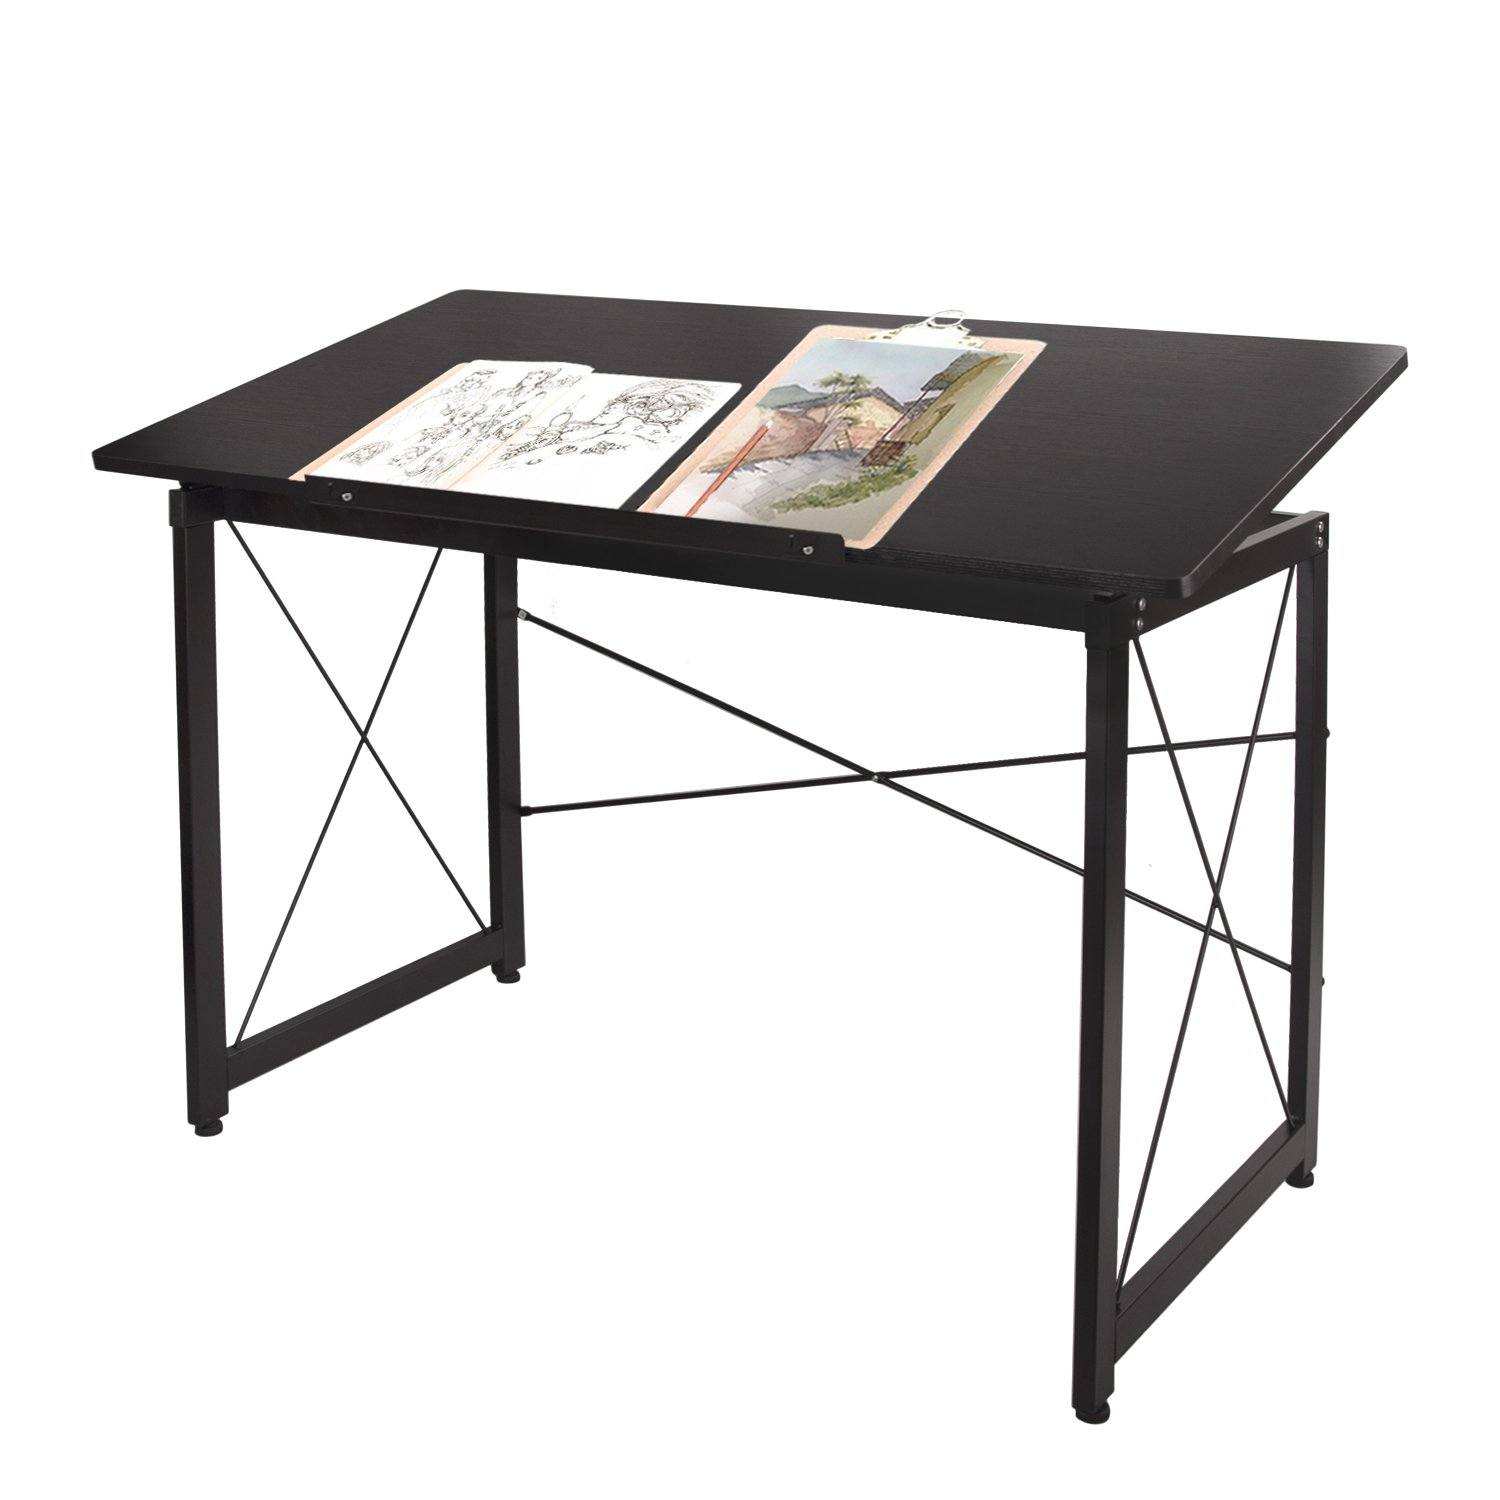 47'' Adjustable Drafting Table - Art and Craft Drawing Folding Desk - Reading & Writing Work Station, Black